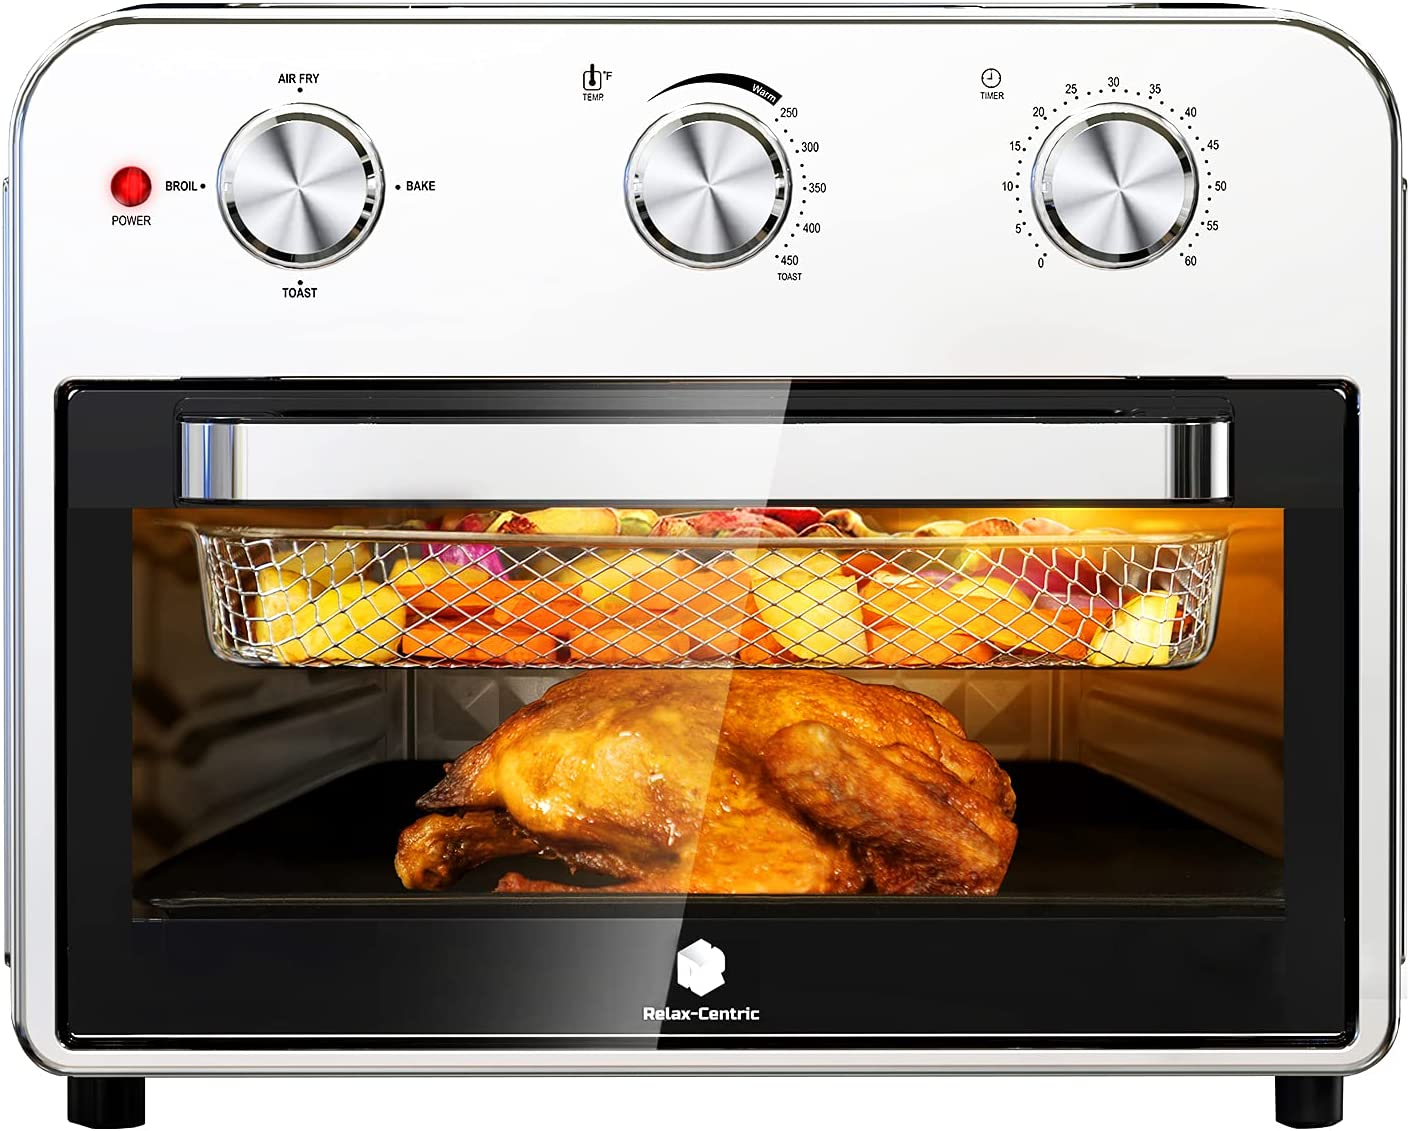 Relax-Centric Air Fryer Toaster Oven, 21 Quart Large Convection Toaster Oven Countertop Stainless Steel Finish, Air Fry, Roast, Toast, Broil, Bake, Reheat, Pizza, cinnabon & Bagel, 1800 Watts Toaster Oven Air Fryer Combo